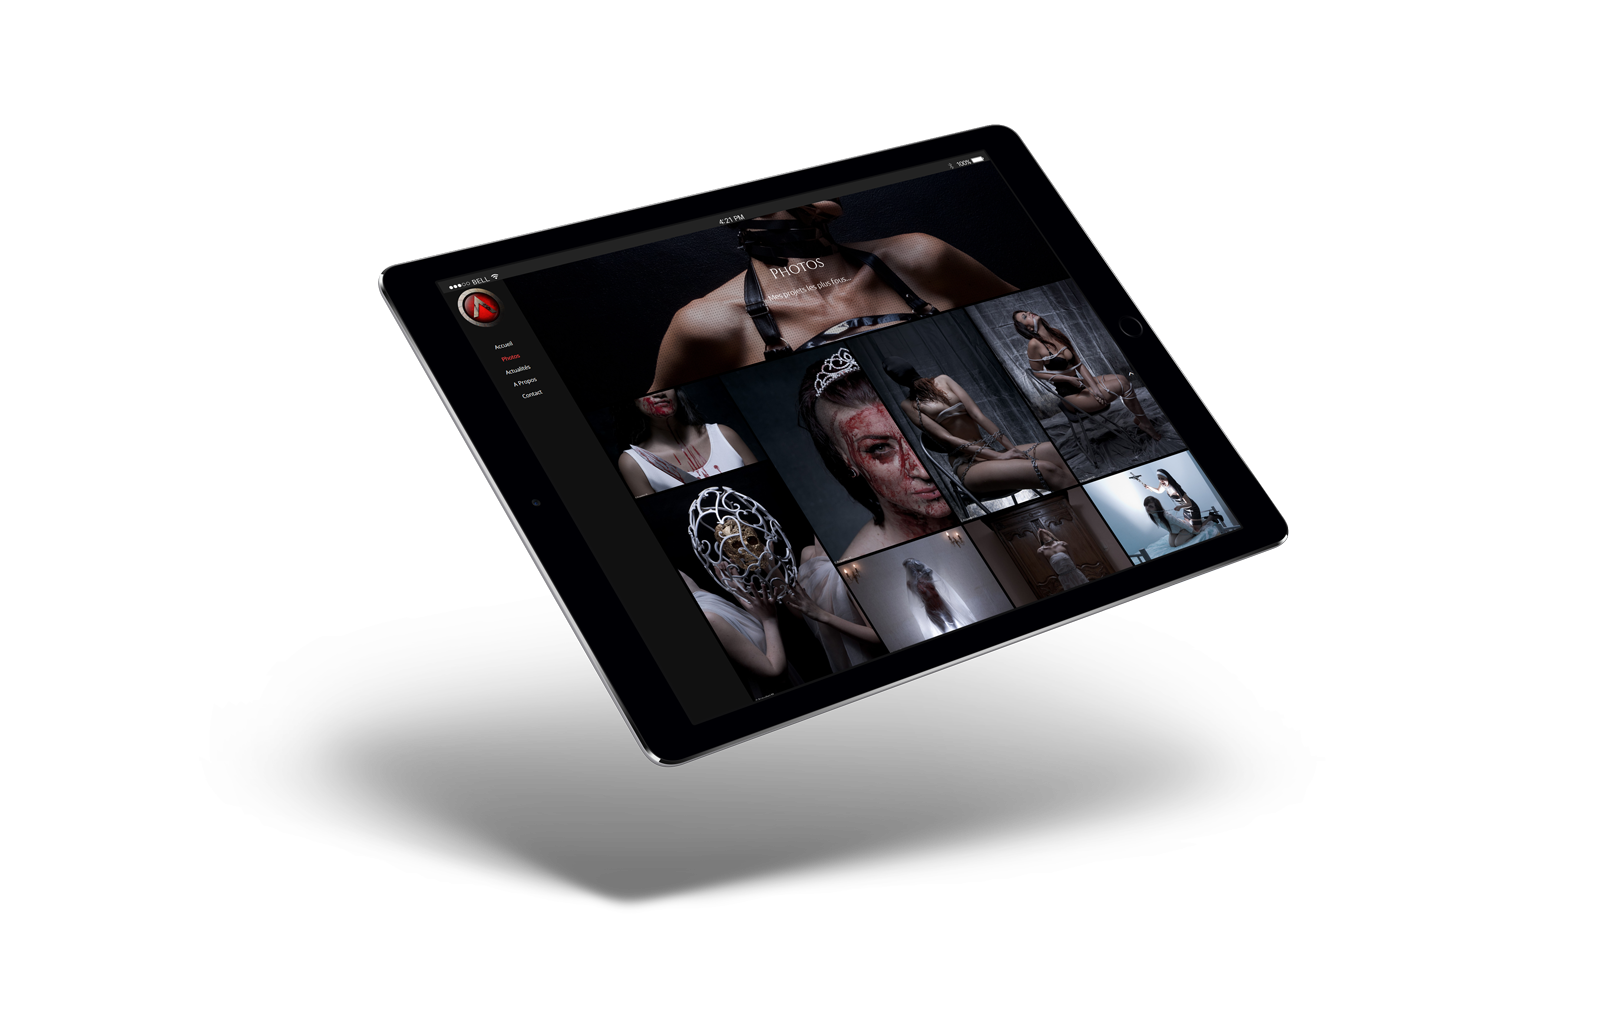 iPad Air 2 Mockup - Acqualeni Photography